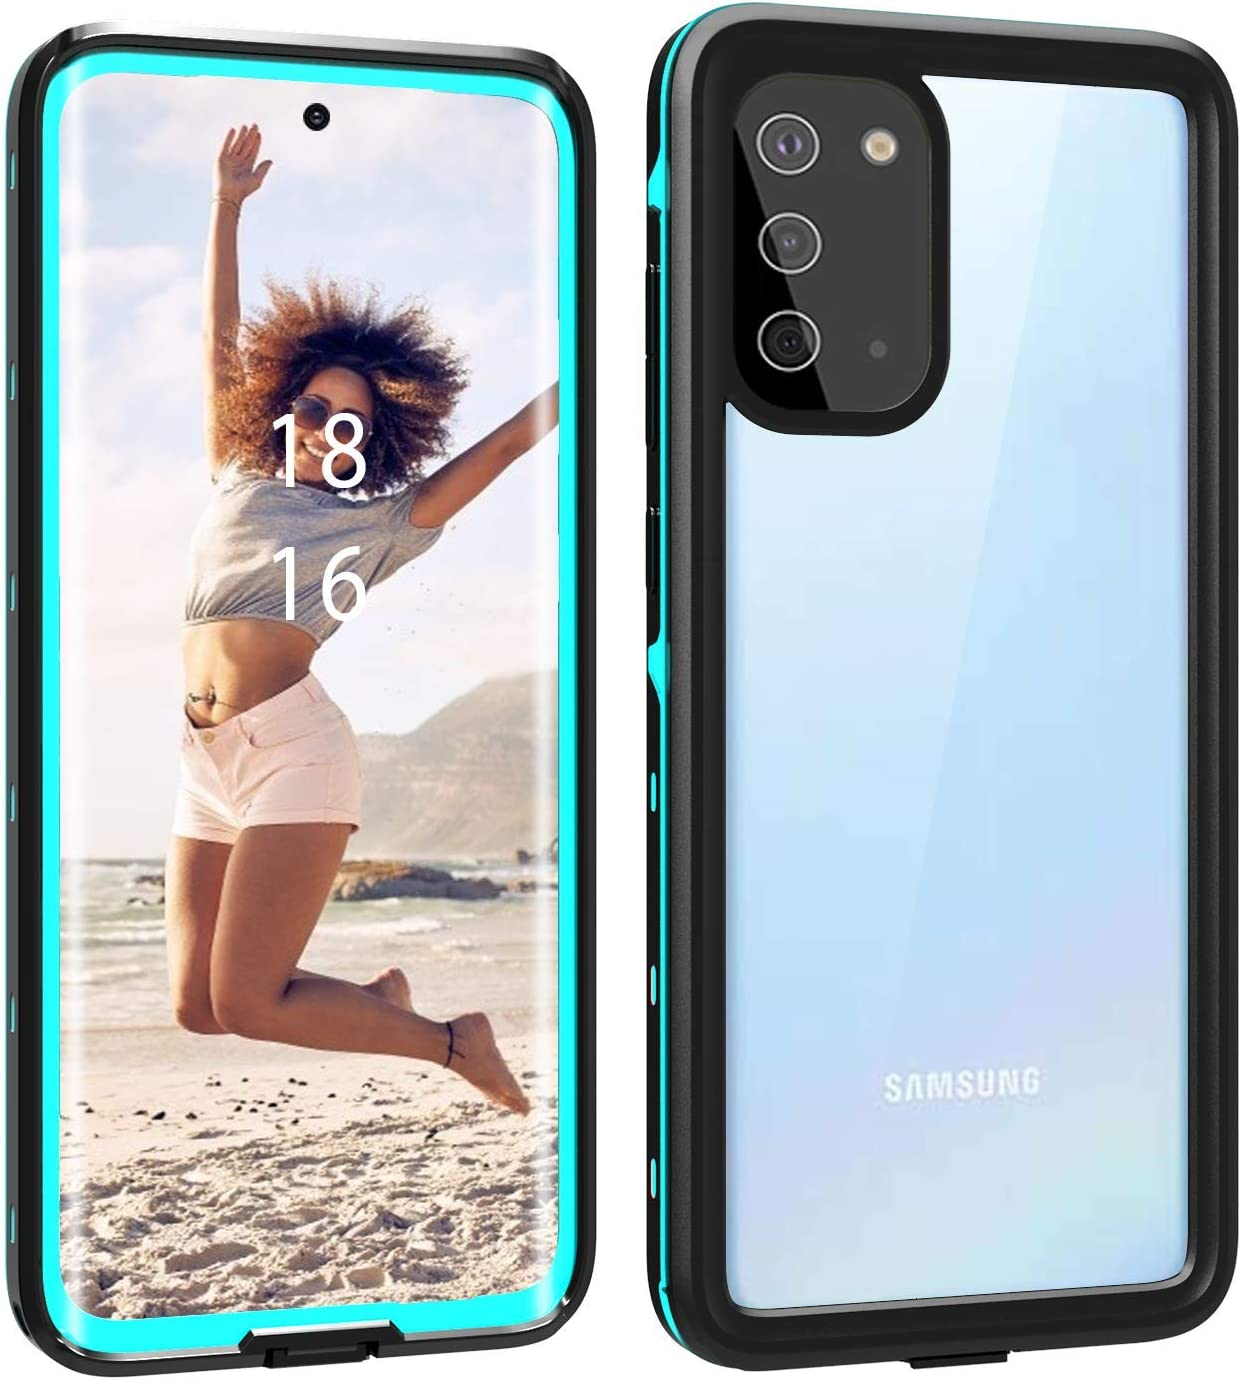 S20 5G 6.2 Samsung Galaxy S20 Waterproof Case With Built-in Screen Protector black IP68 Certified Waterproof Shockproof Dustproof Scrach Resistant Cases Full-Body Rugged Holster for Galaxy S20